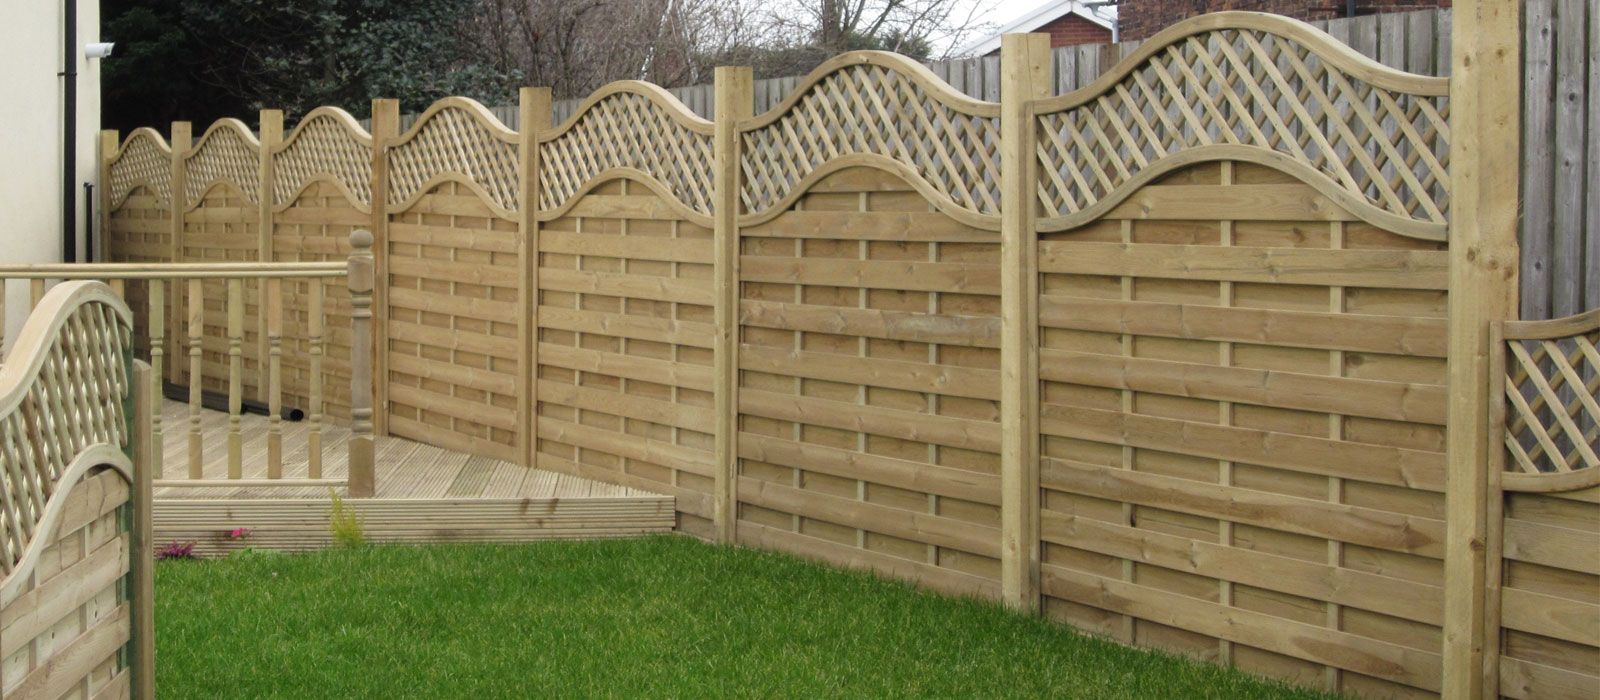 Nice Garden Fence Ideas That Truly Creative, Inspiring, And Low Cost * * *